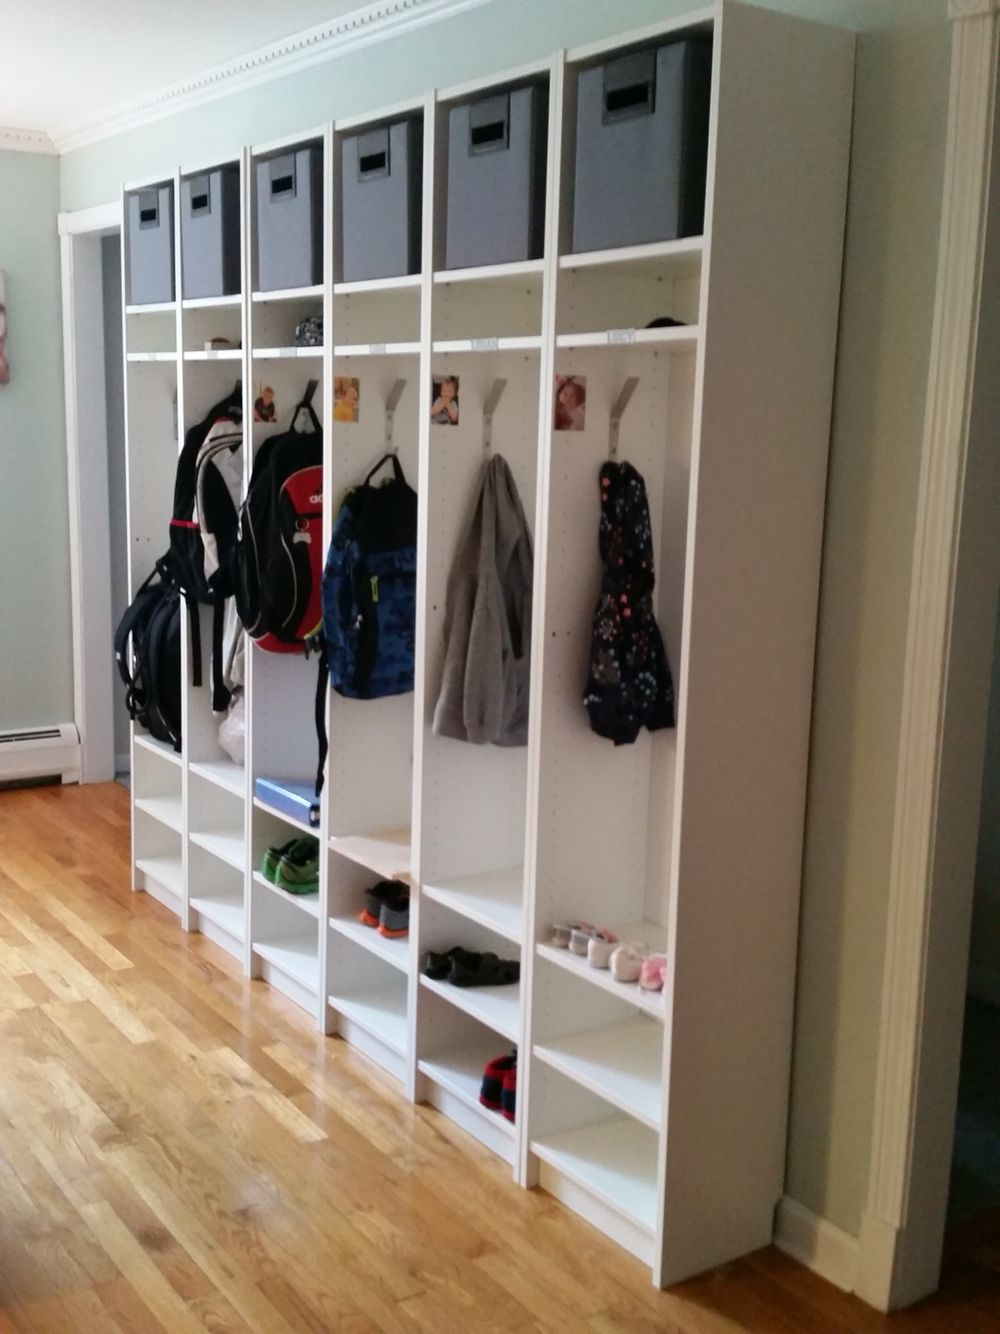 ikea hack billy bookcases turned cubbies motherwood past projects pinterest. Black Bedroom Furniture Sets. Home Design Ideas